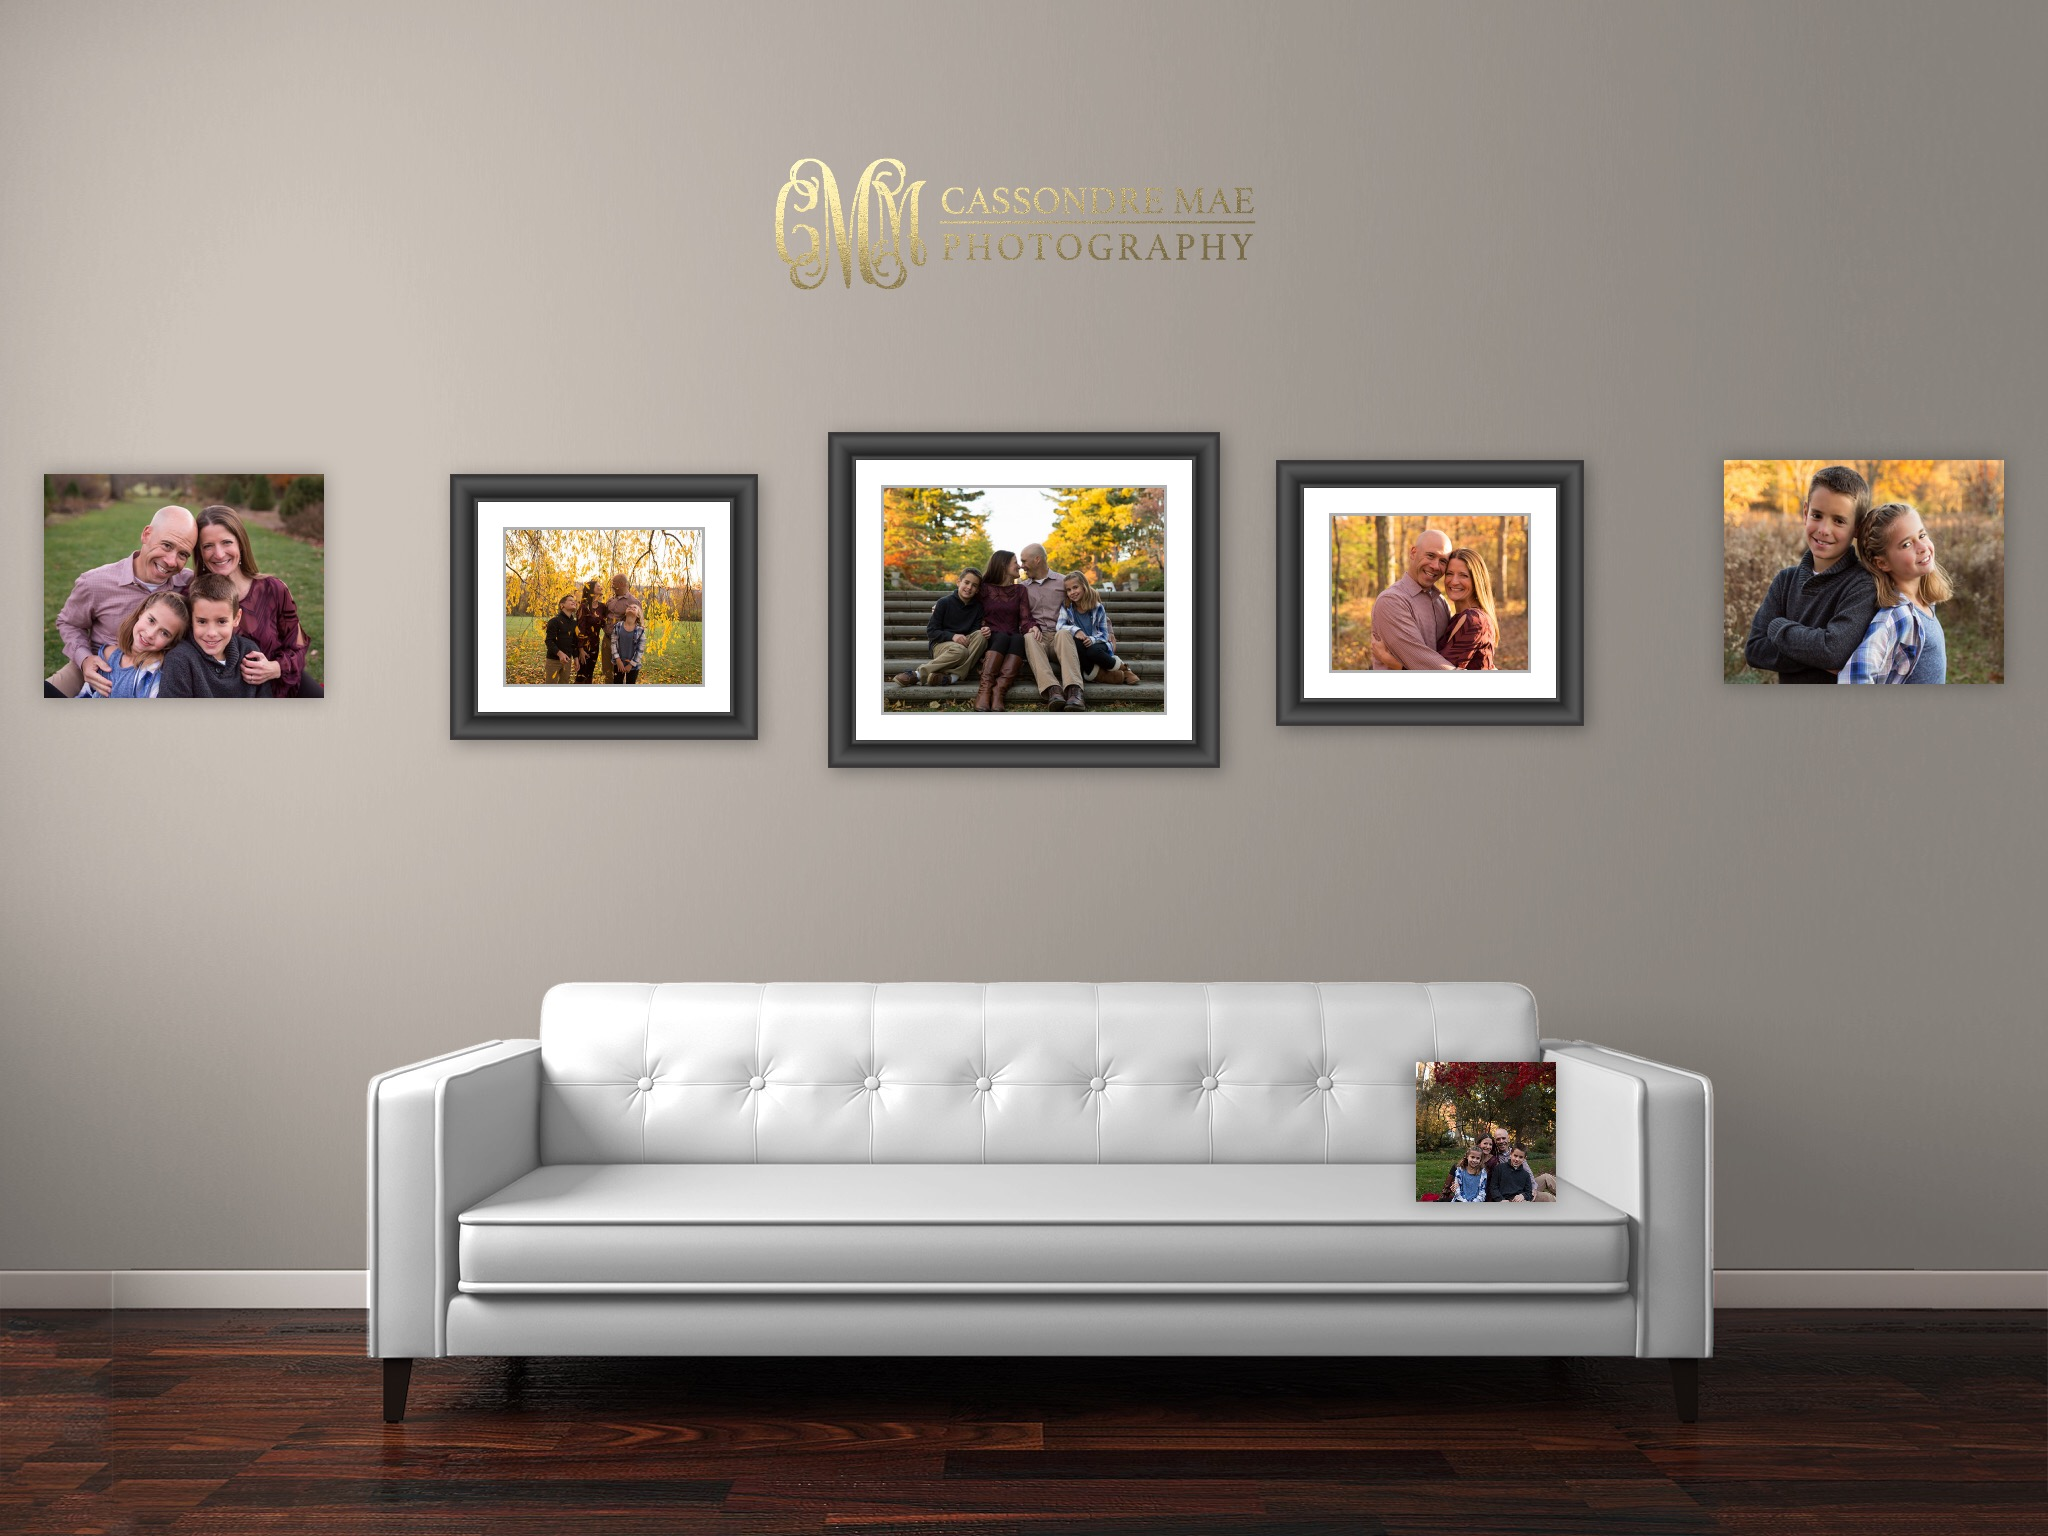 :: The Heirloom Collection :: Get the most variety out of this collection! Not only does it come with stunning wall art, but this collection also includes our Signature Book; a 10x10 leather bound album with up 20 images. Wall Art Sizes Included: 2-11x14's, 1-16x20 -Fine Art Prints 2-16x20's - your choice of our premium Canvas Wrap or our sleek Vivid Metal prints.